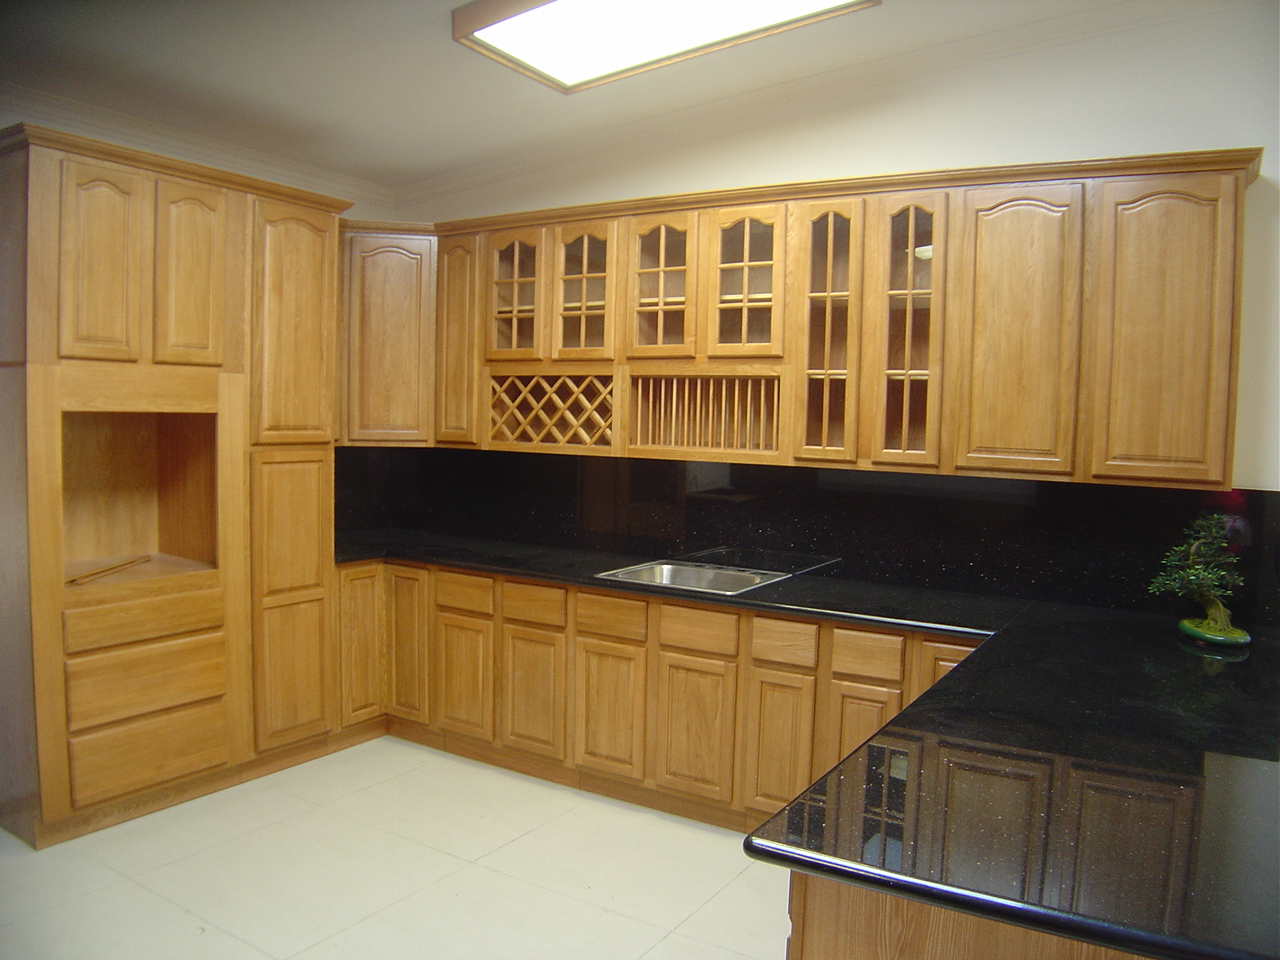 Oak kitchen cabinets for your interior kitchen minimalist for Kitchen interior designs pictures